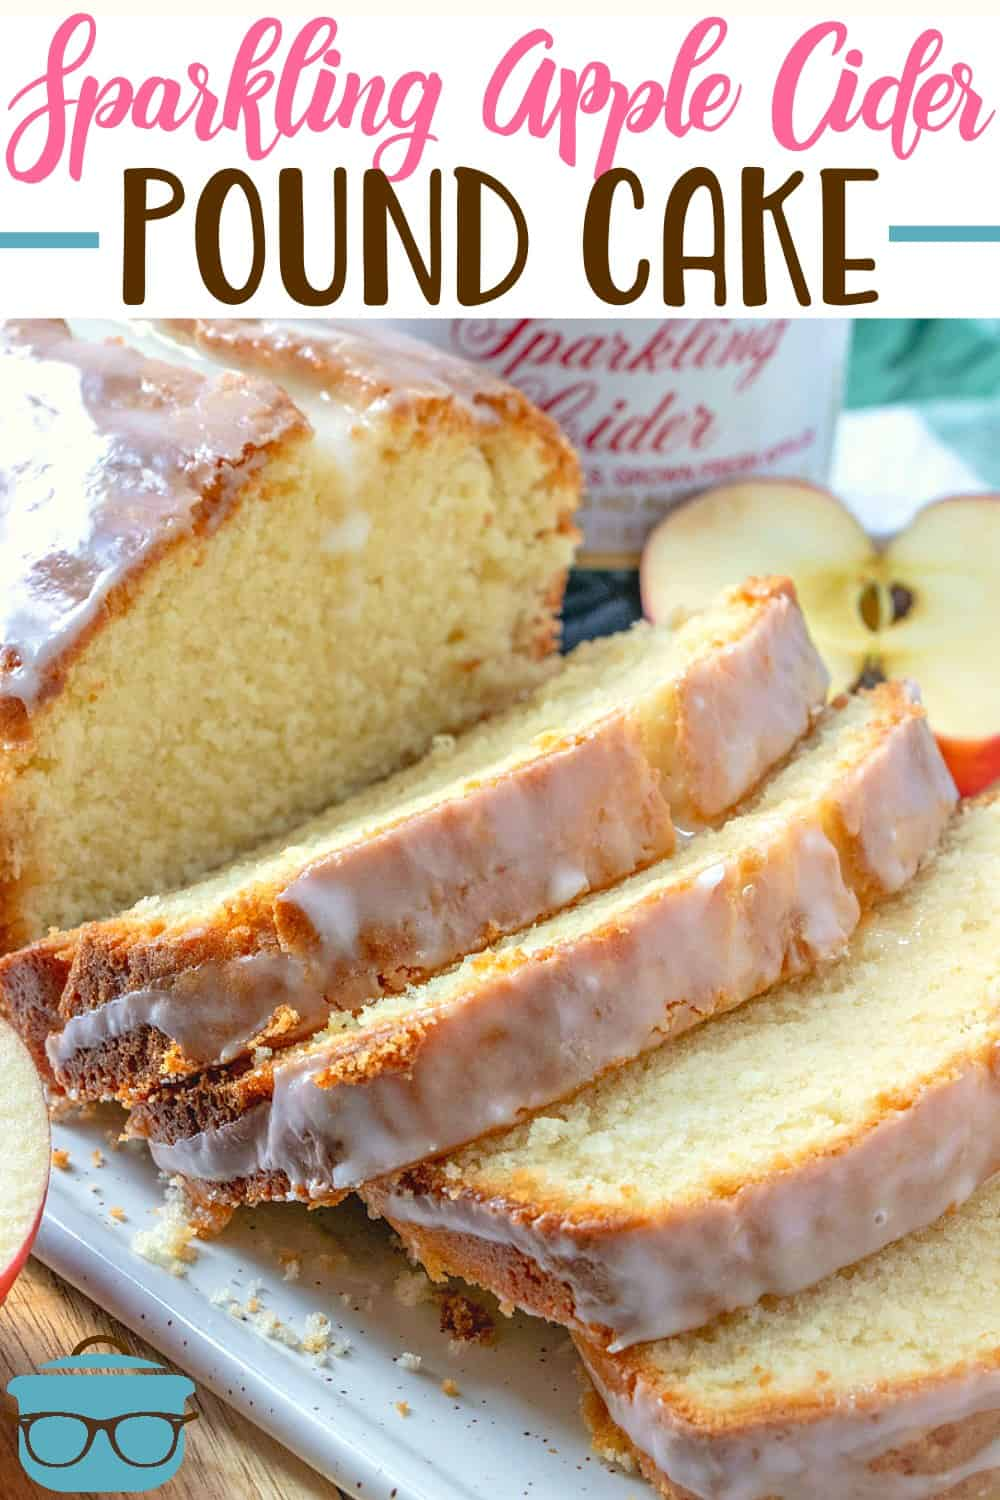 Sparkling Apple Cider Pound Cake is a moist homemade pound cake that has a light apple taste with a delicious apple cider glaze! #dessert #apple